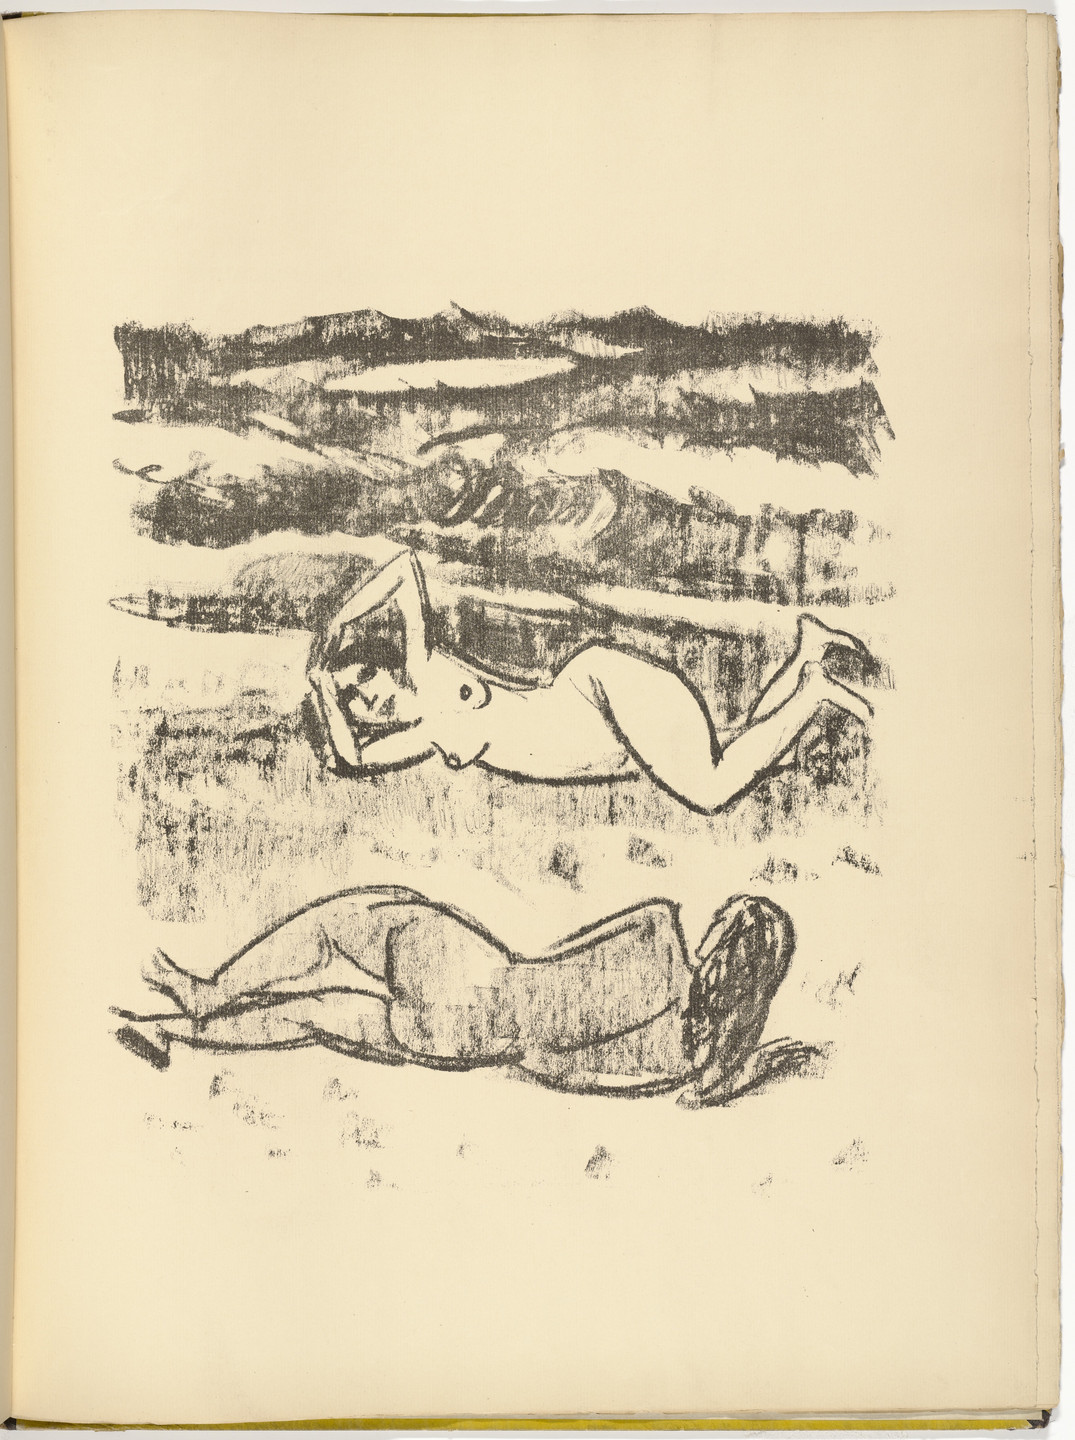 Max Pechstein. Untitled (plate, facing page 32) from Die Samländische Ode (The Samland Ode). 1918 (executed 1917)